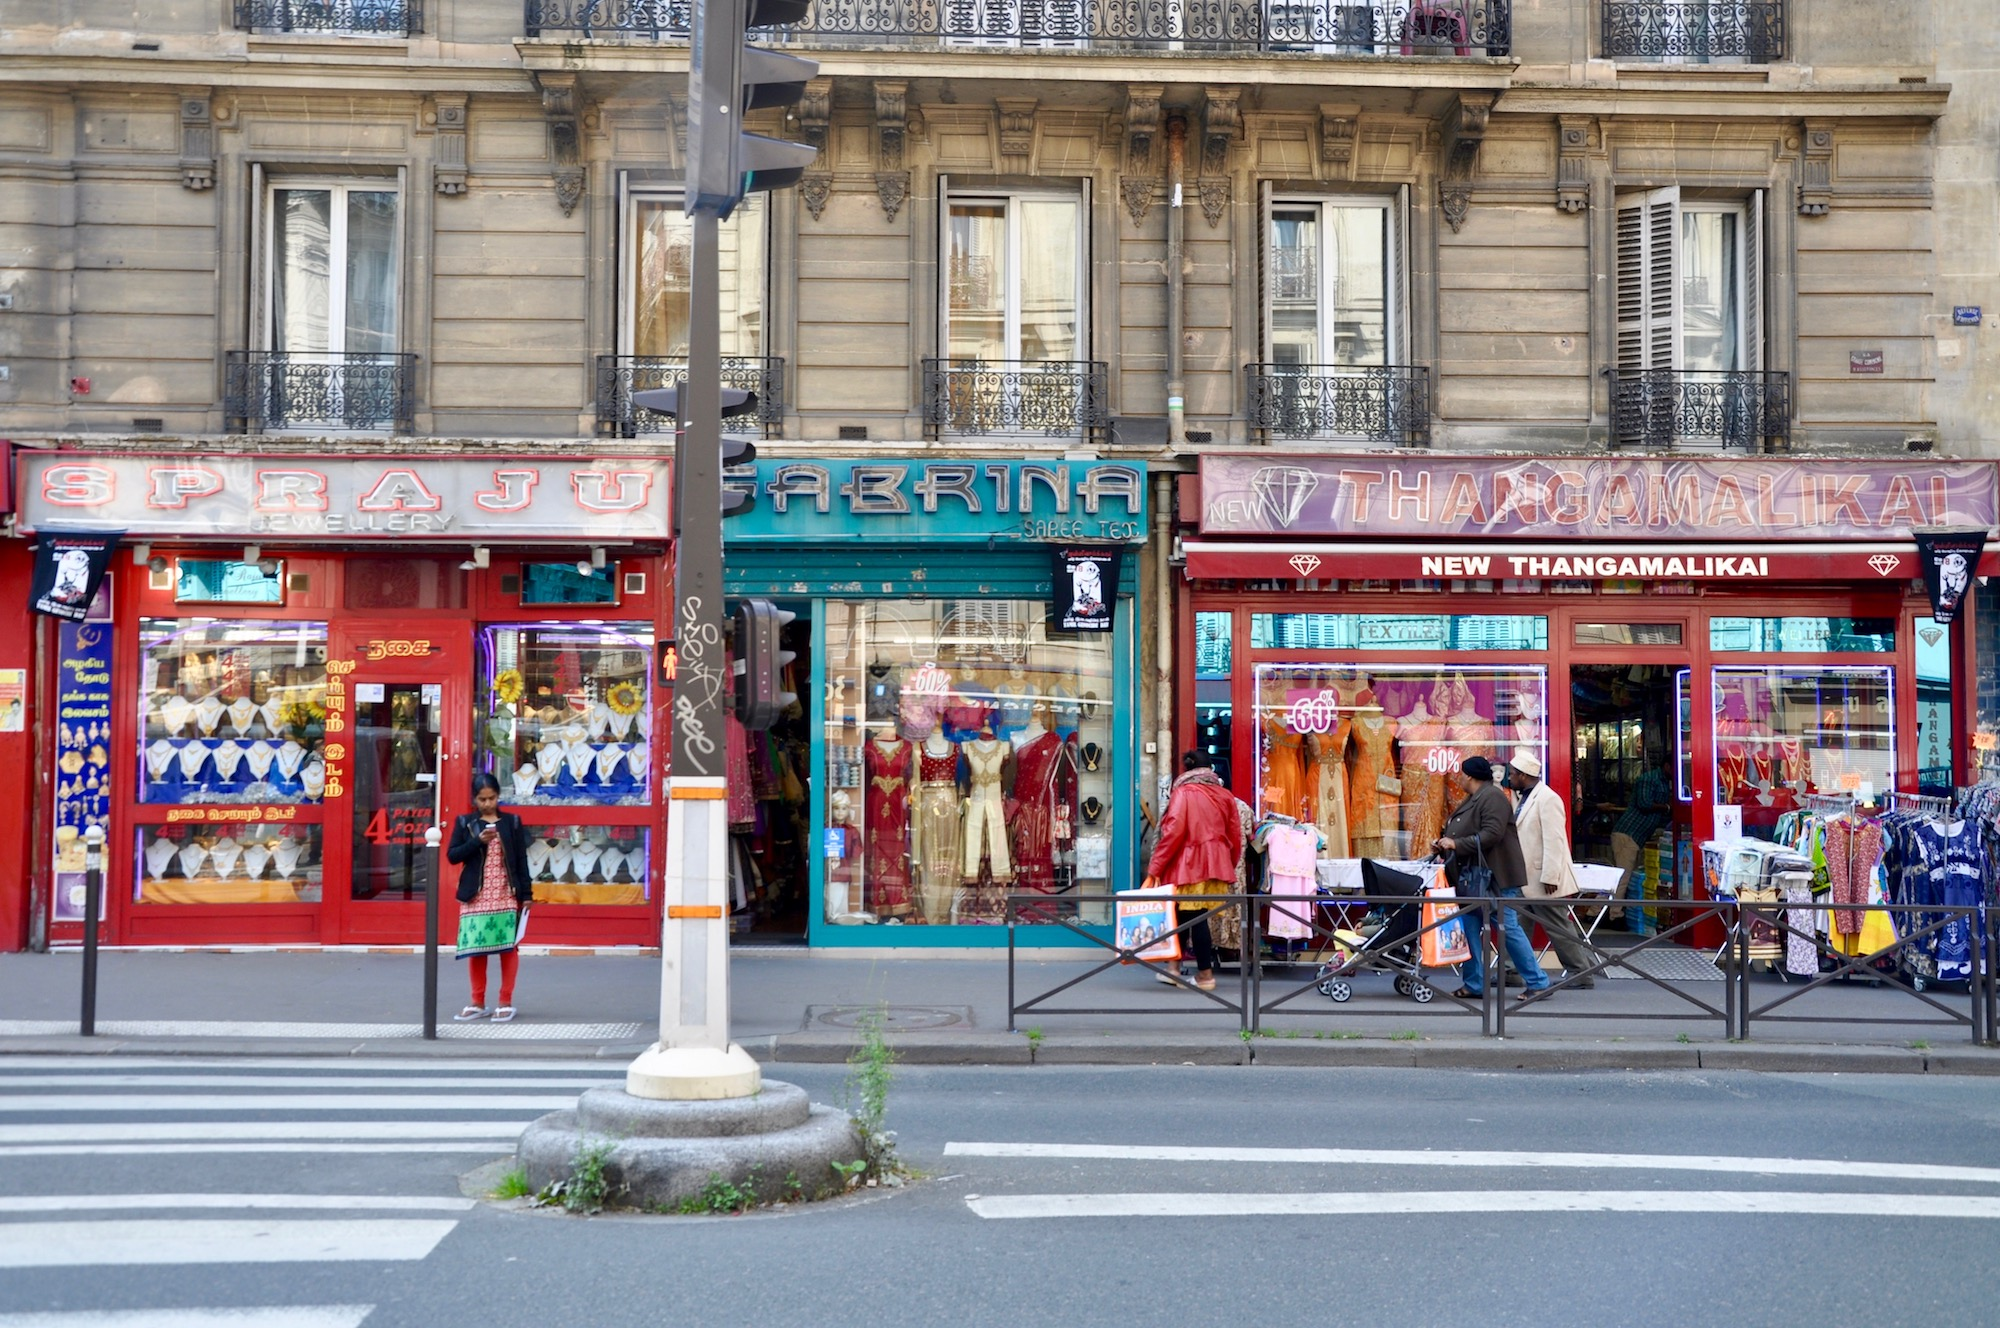 If you're eager to discover an authentic Paris neighborhood far from the touristy hordes, try visiting La Chapelle – a Parisian quartier on the border of the 10th, 18th, and 19th arrondissements.